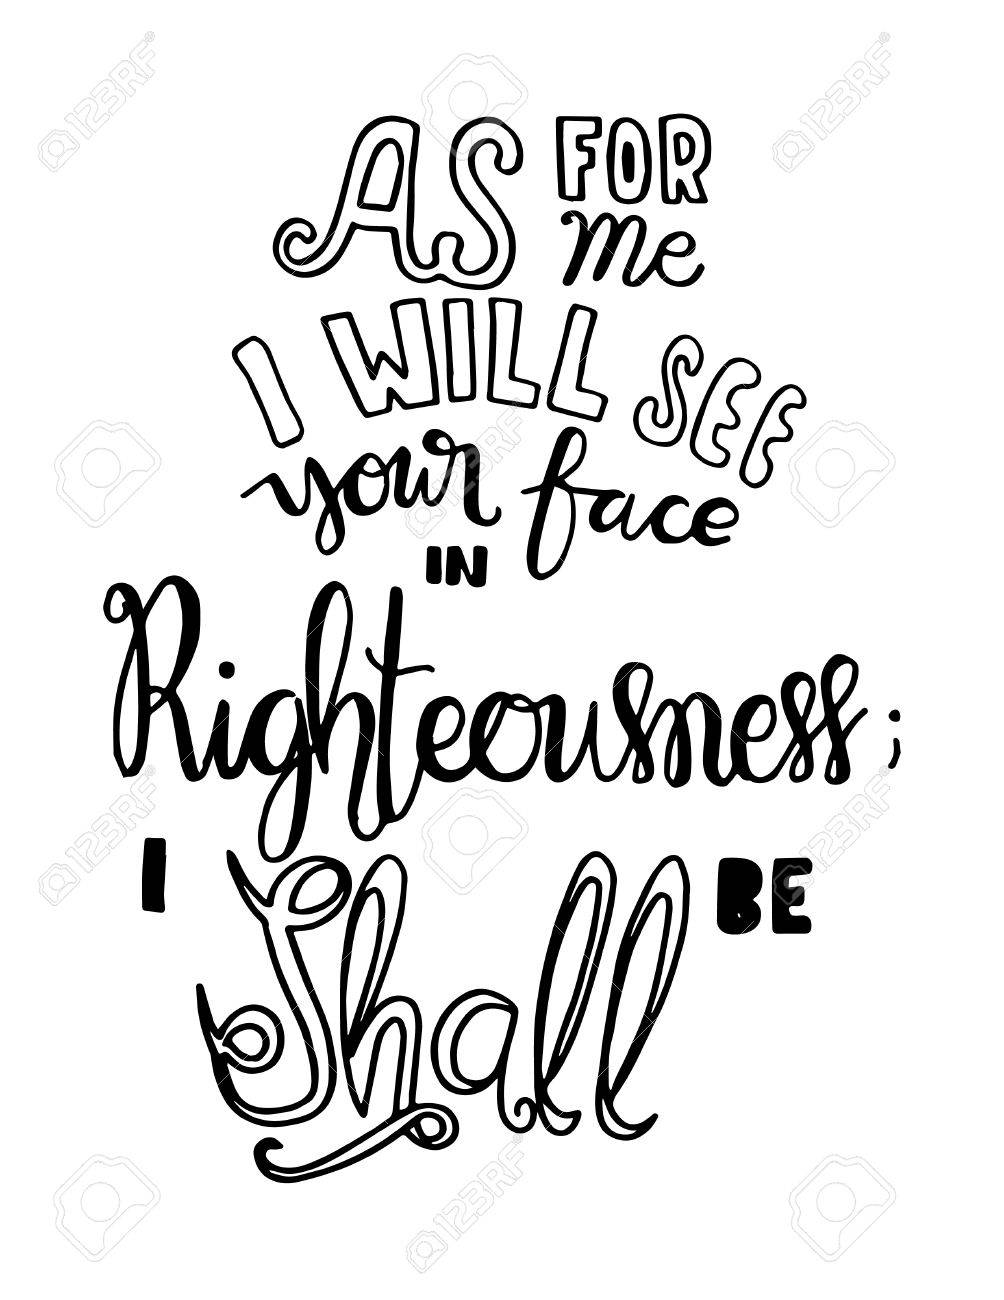 i will see your face in righteousness. Hand Lettered Quote. Inspirational Wall Art. Modern Calligraphy - 64224498